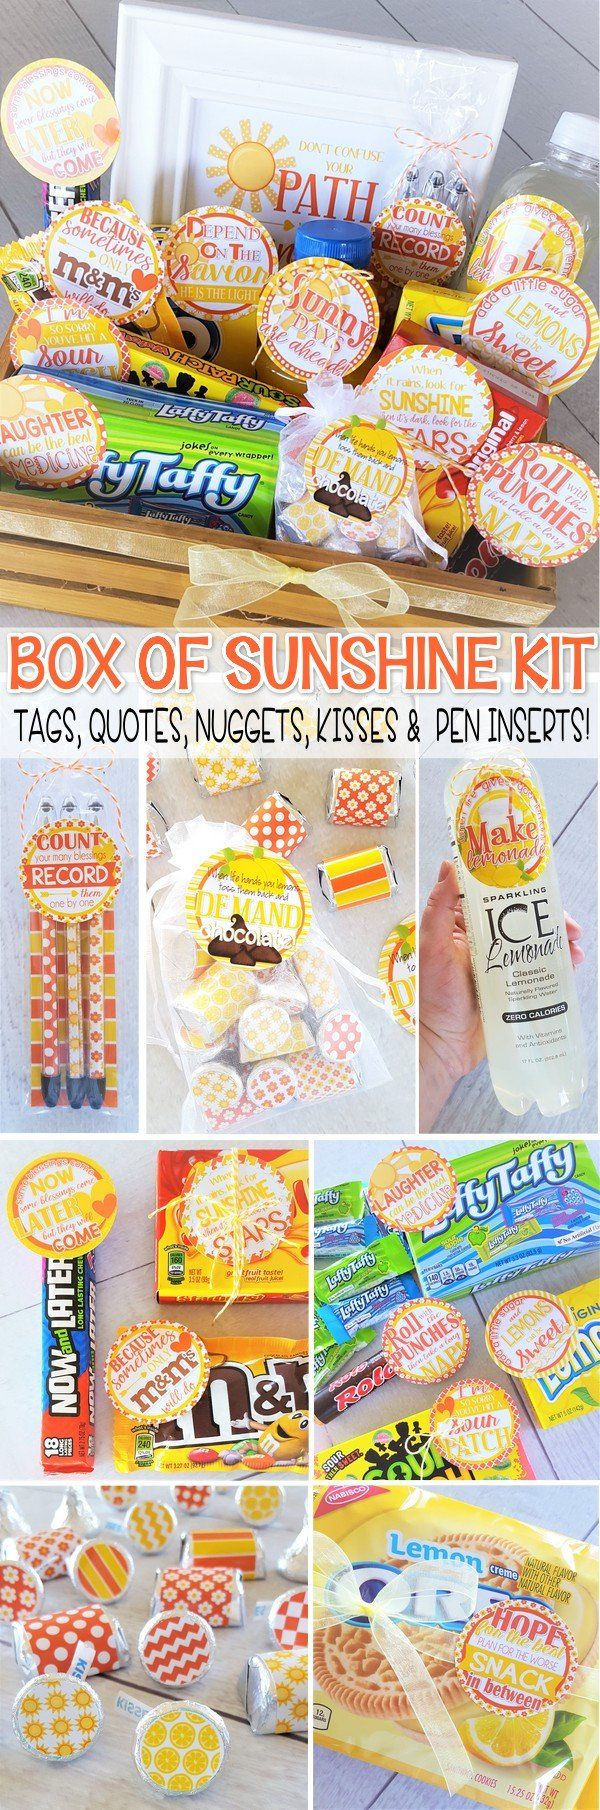 Box of Sunshine Printables! Basket of sunshine, care package - great gift of encouragement! Gift tags, kisses, nuggets and more included - so cute!! #mycomputerismycanvas